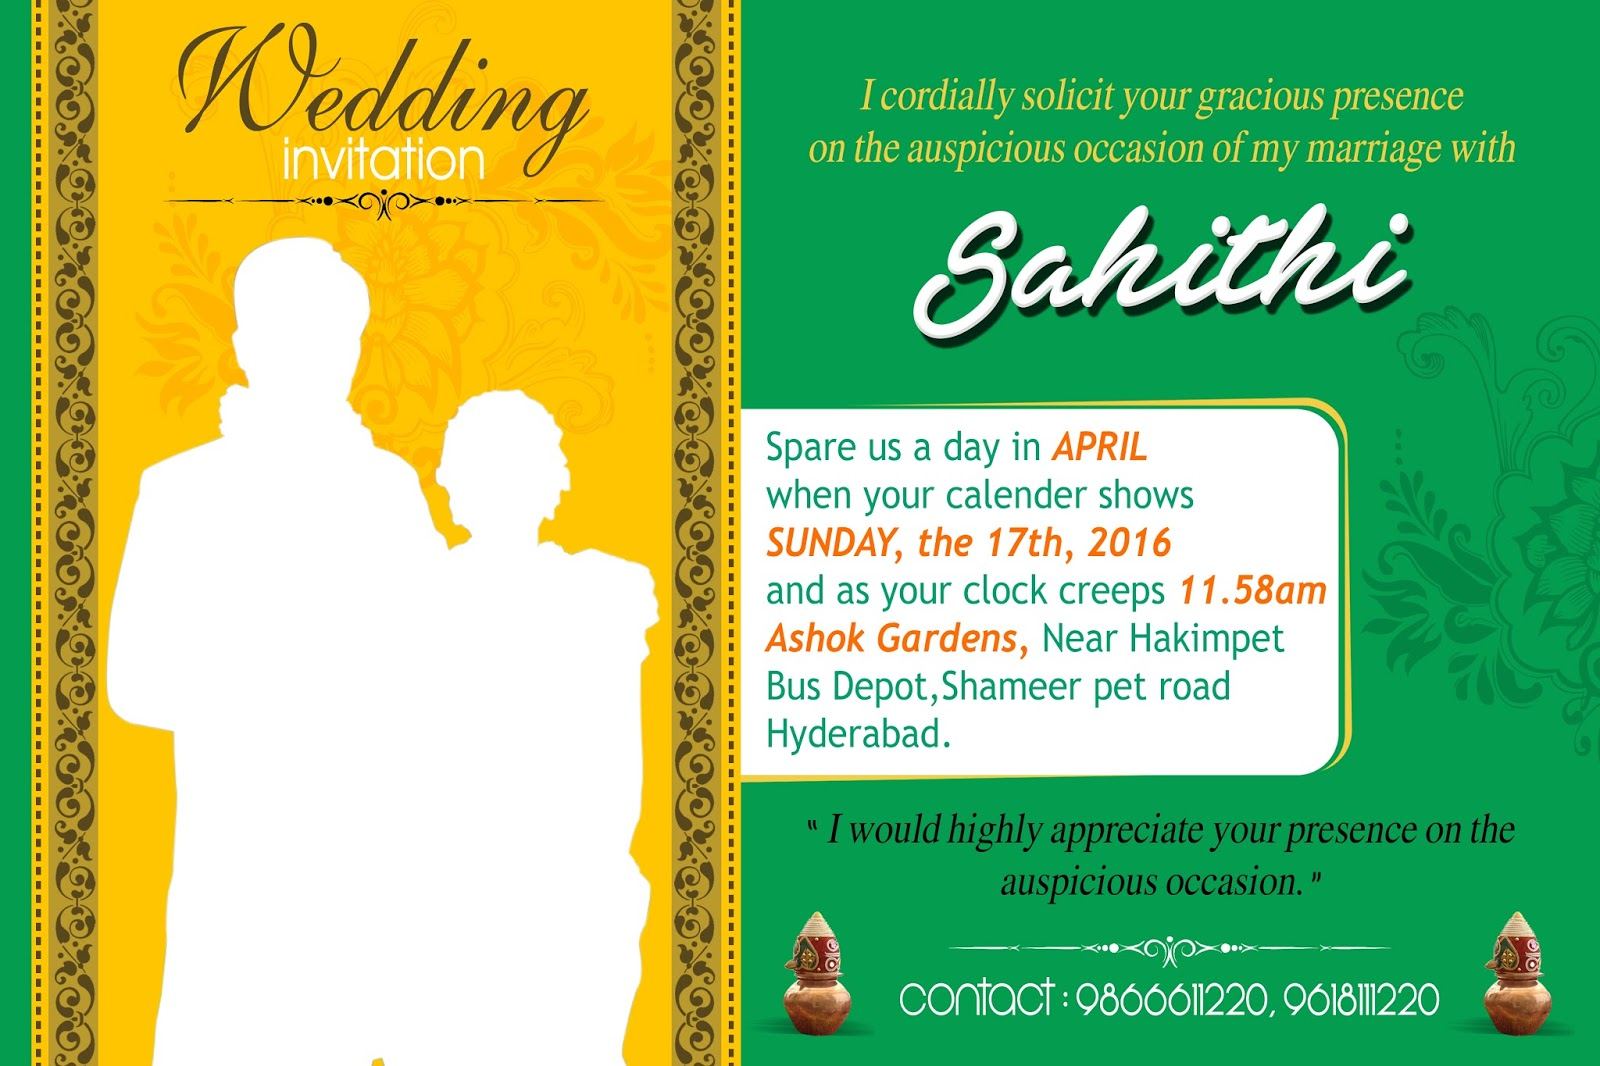 Indian Wedding Invitation Templates Online – Online Hindu Wedding Invitation Cards